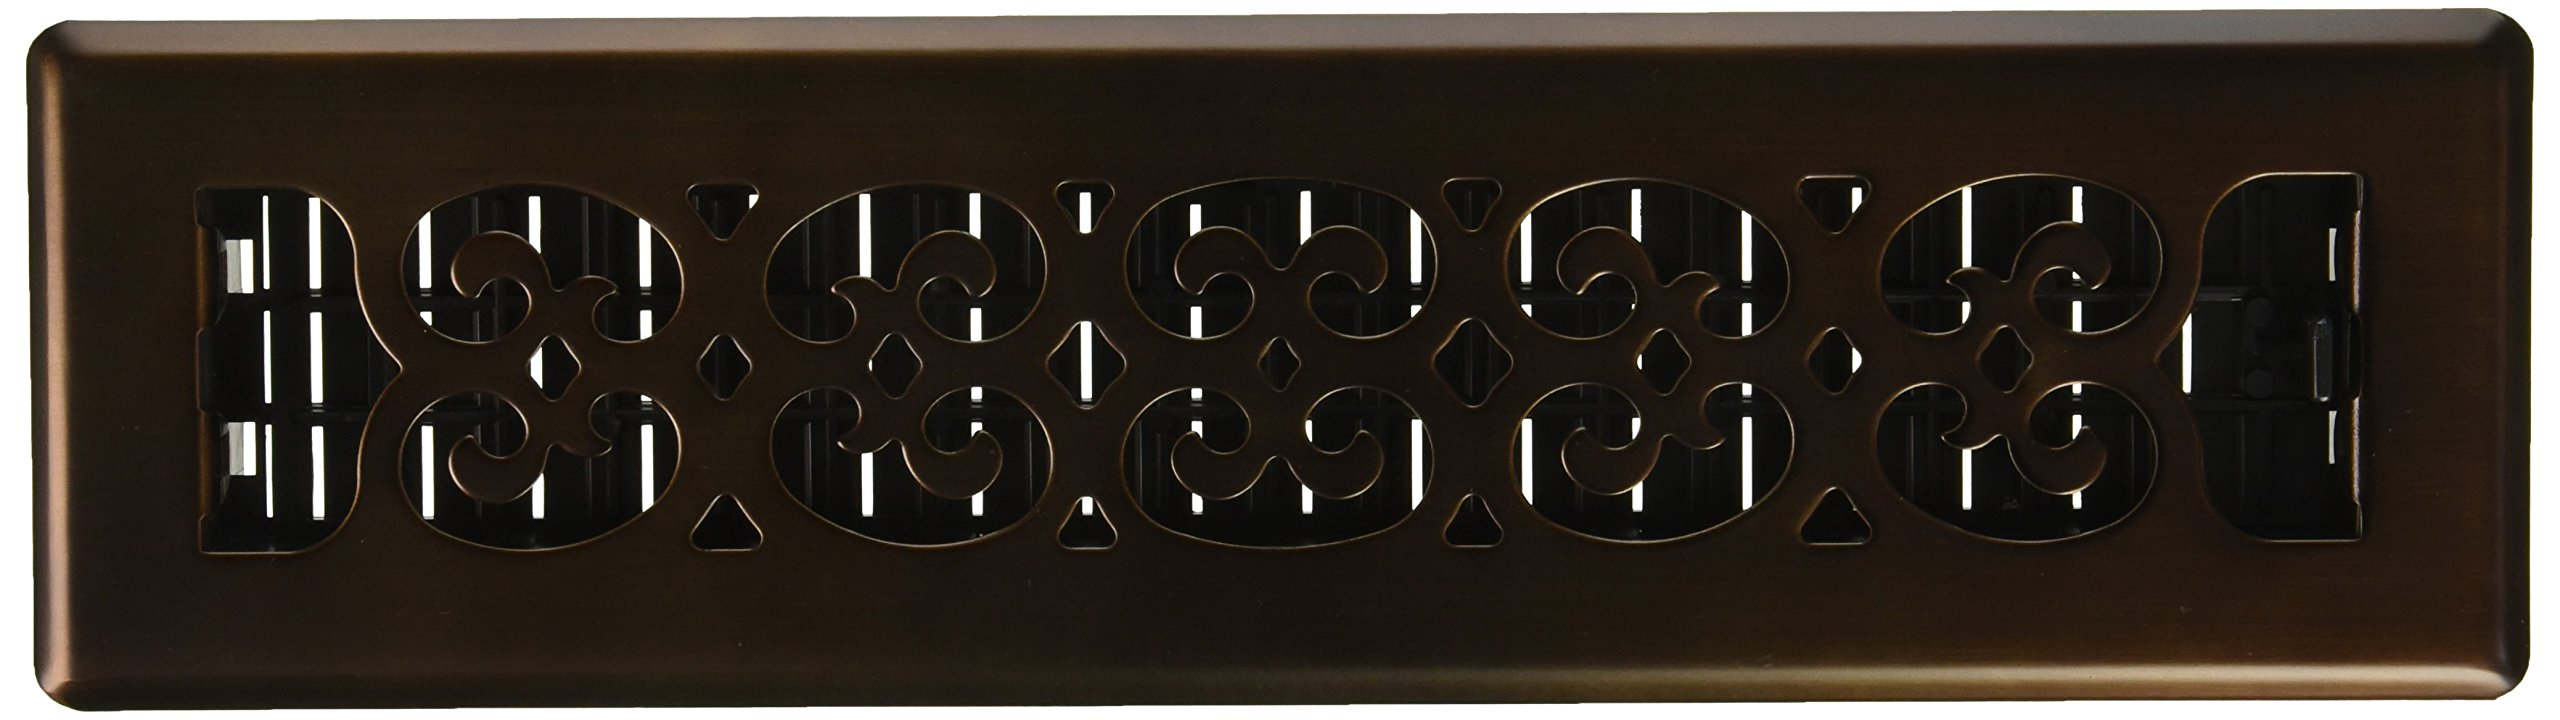 Decor Grates SPH212-RB Scroll Plated Register, 2-Inch by 12-Inch, Rubbed Bronze by Decor Grates